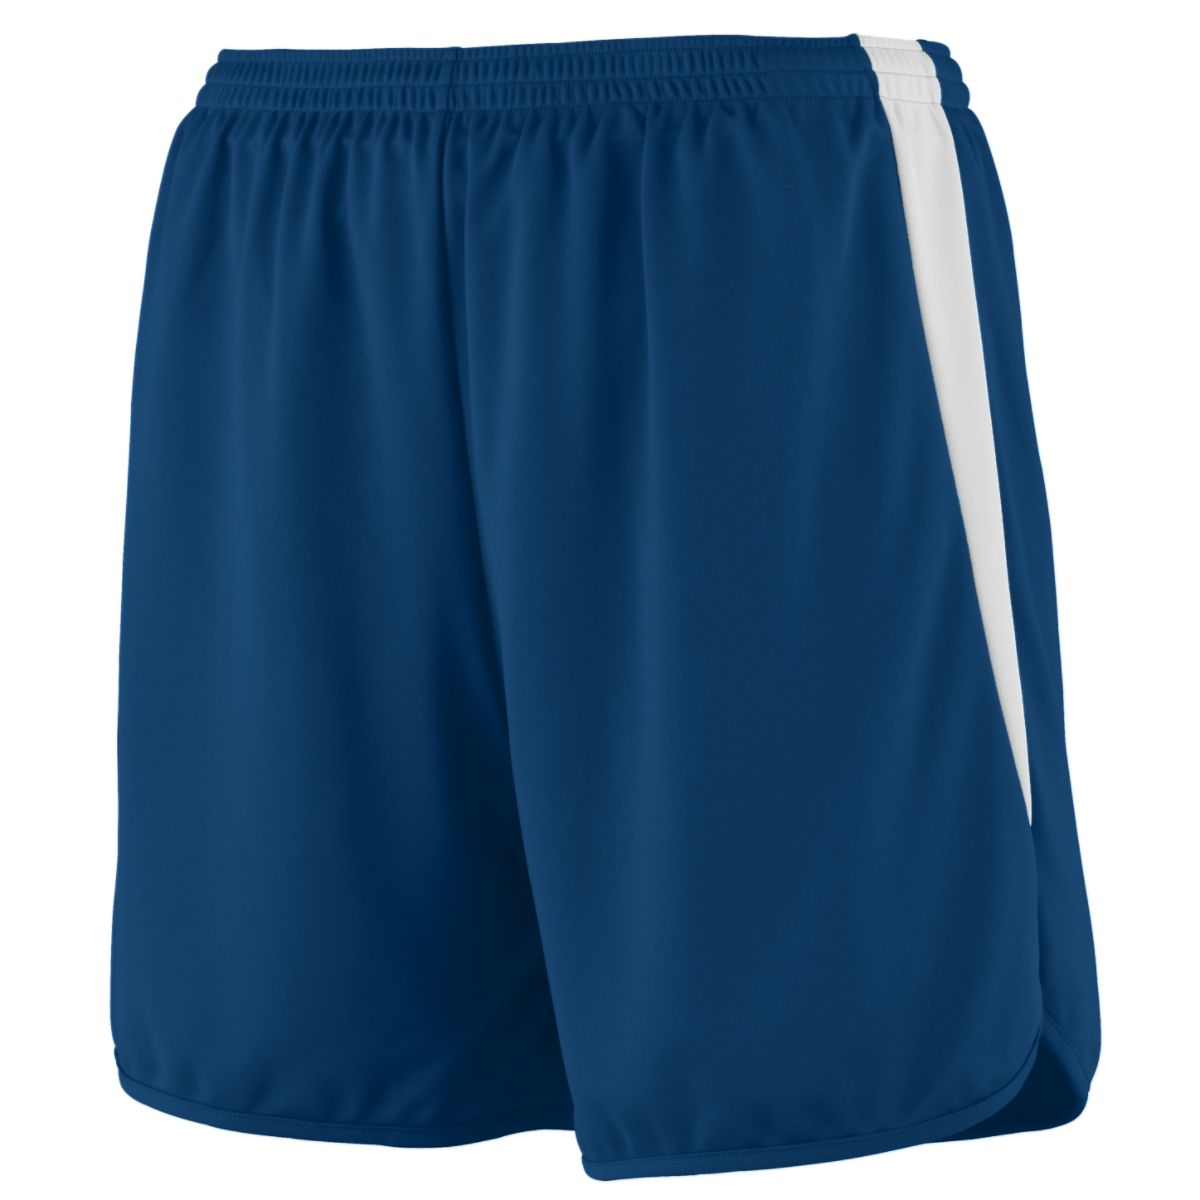 Augusta Rapidpace Track Short Nav/Whi Xl - image 1 of 1